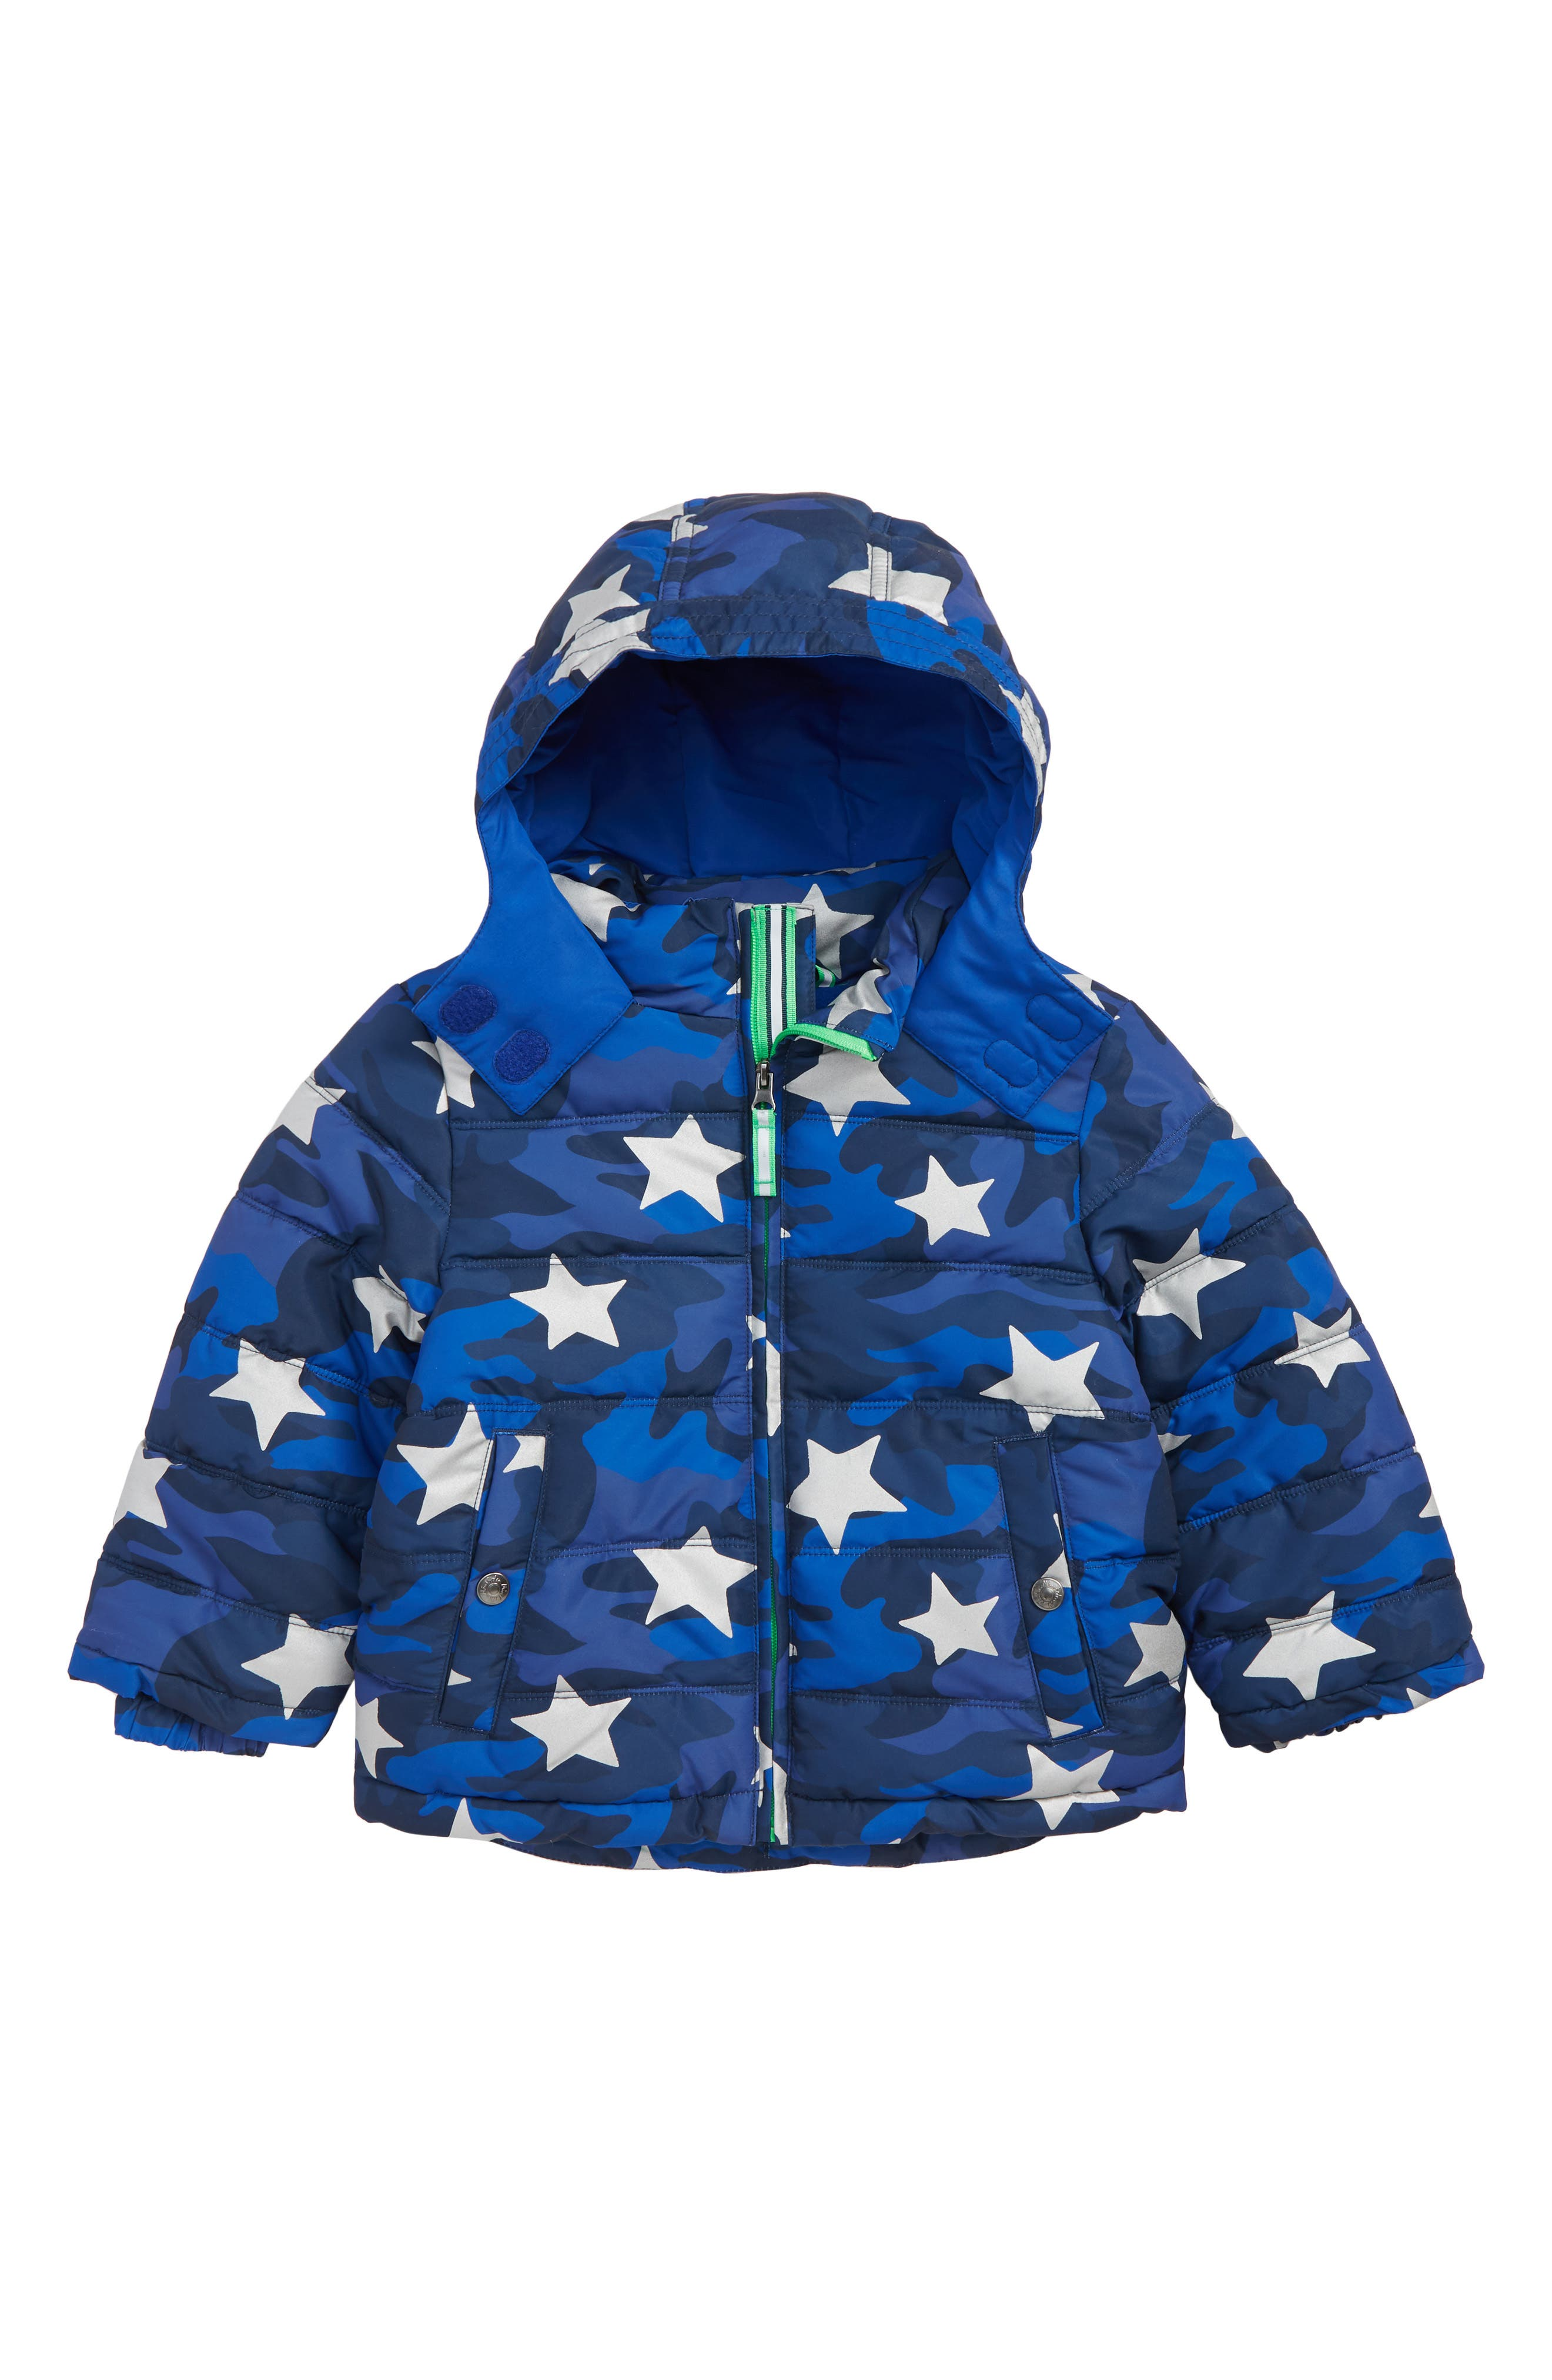 MINI BODEN High Visibility Water Resistant Quilted Coat, Main, color, BLUE SCHOOL NAVY CAMO STAR